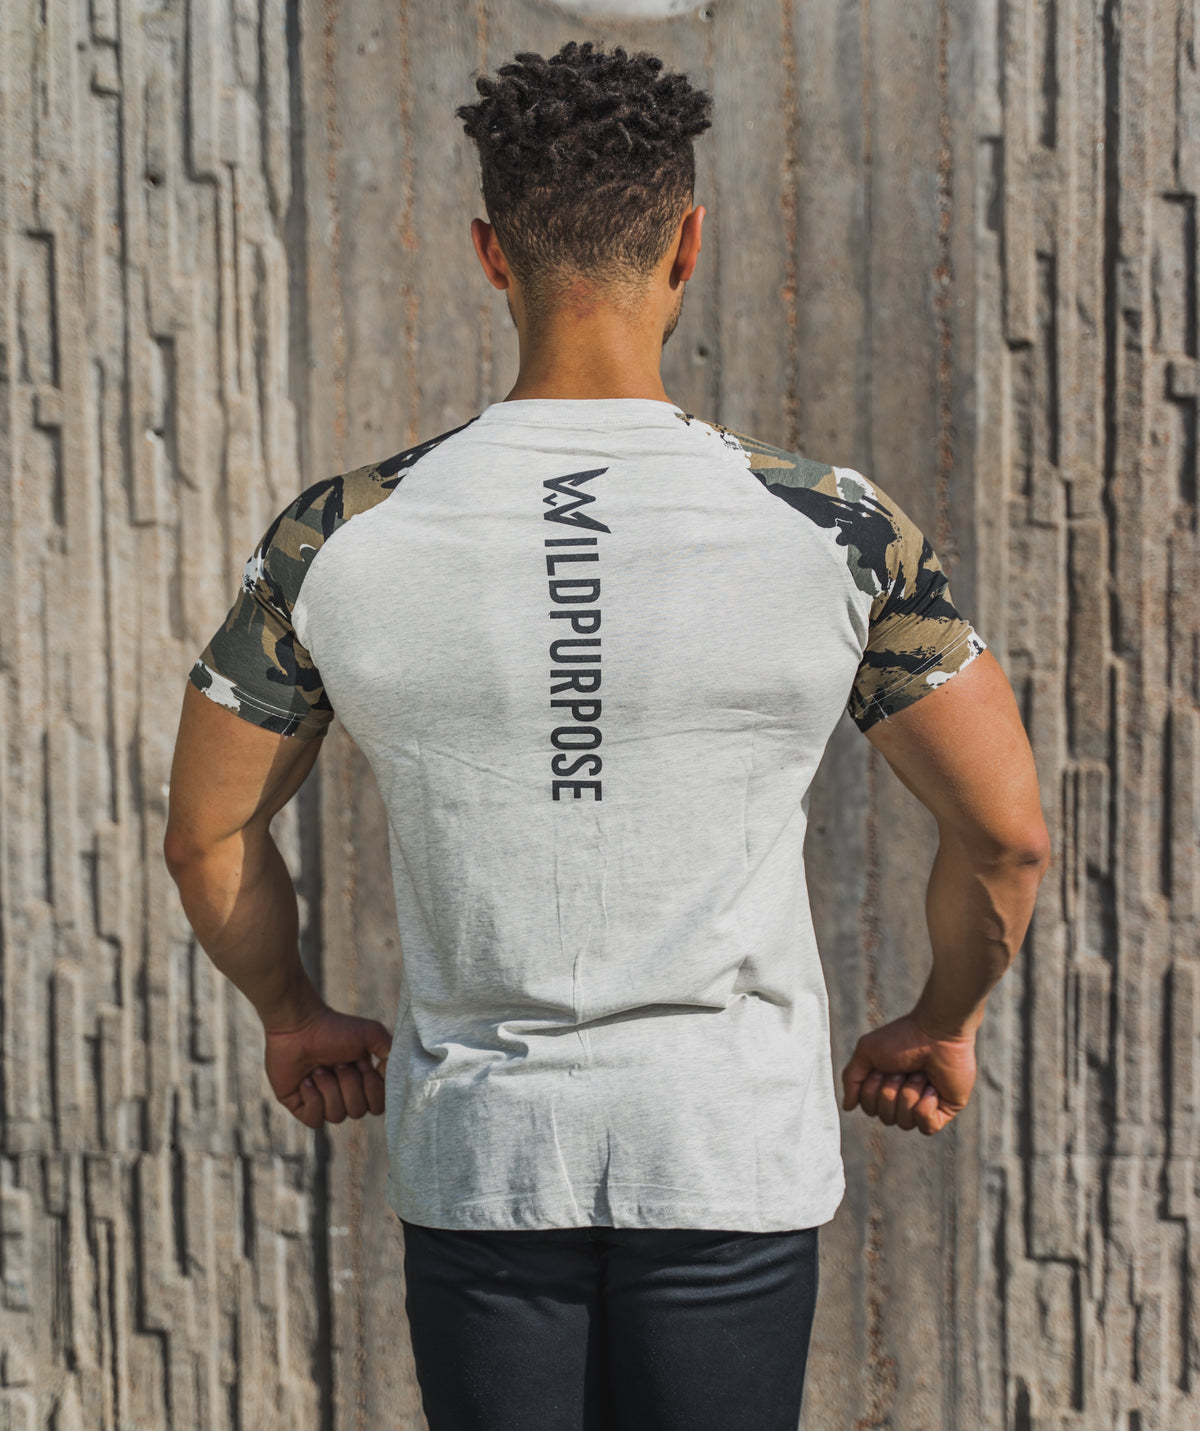 FATALITY Performance Shirt | Desert Camo